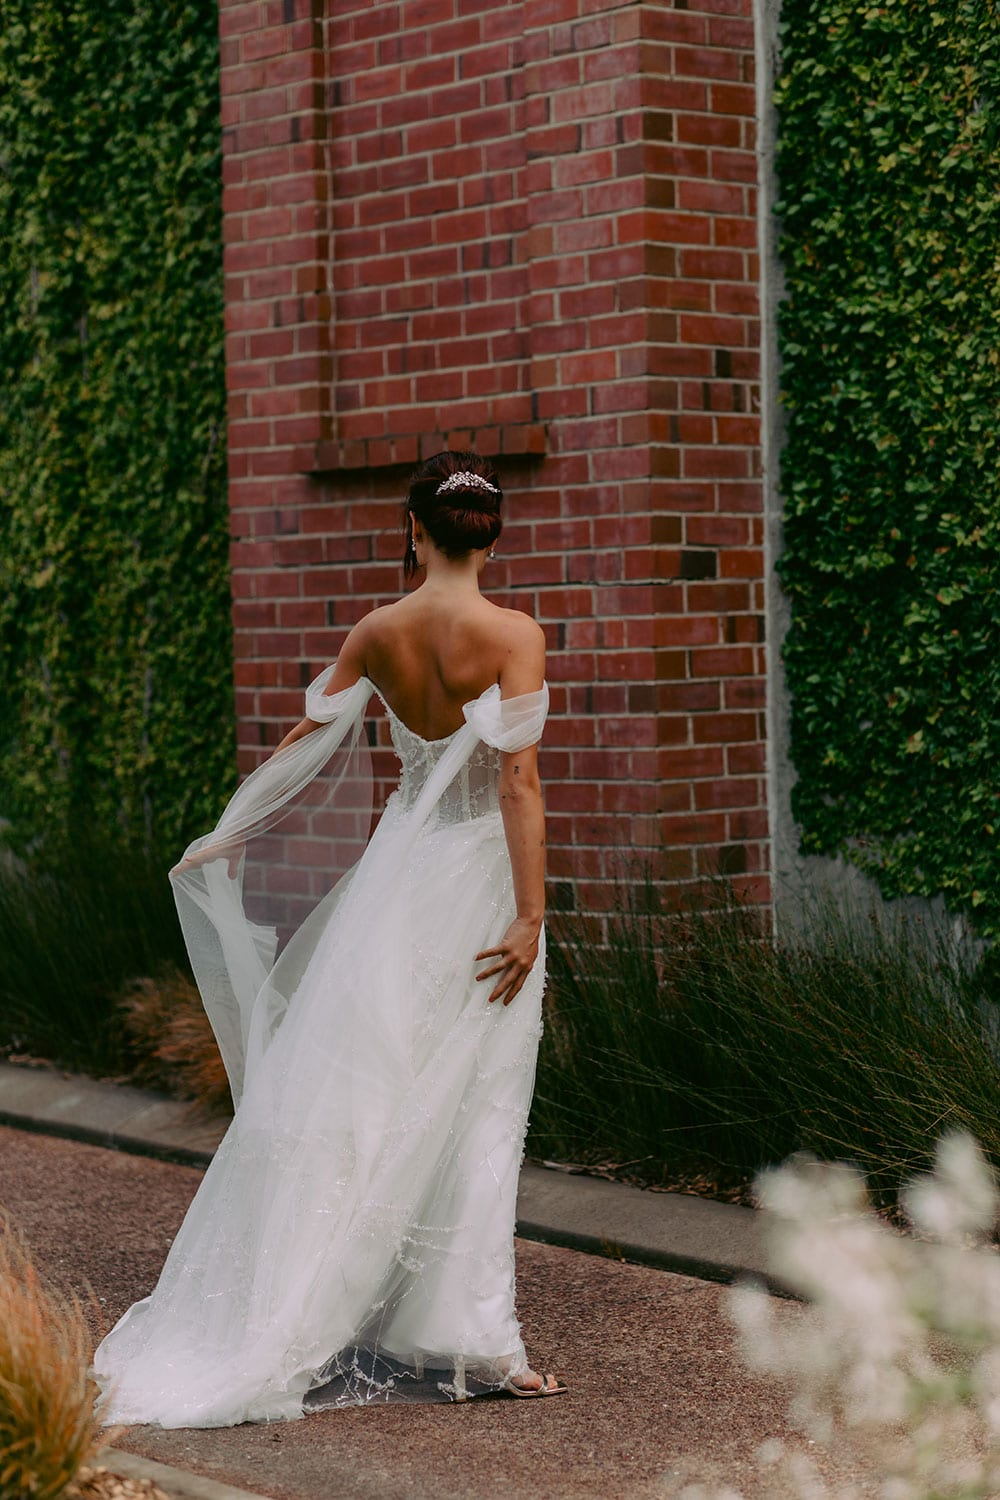 Evie Wedding gown from Vinka Design - Dreamy semi-sheer wedding dress with lace embroidery and beading. The bodice is structured, with hand-appliqued lace and draped with tulle to integrate modern elements with classic design. Model wearing gown portrait walking away with dress flowing.